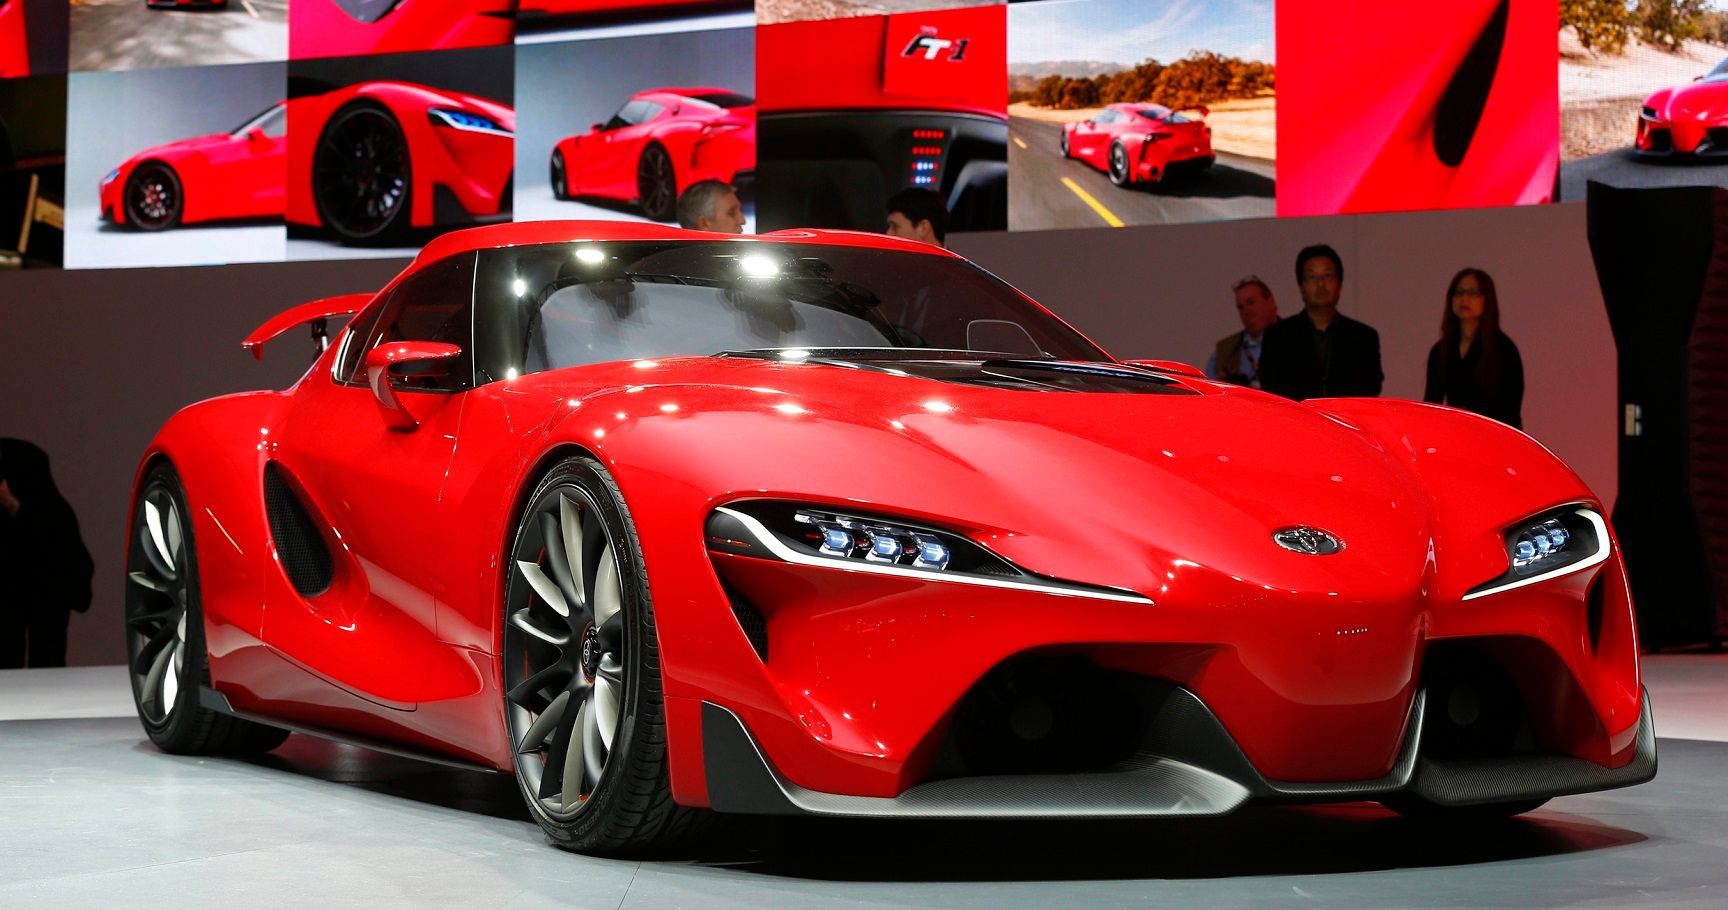 The 10 Most Valuable Car Brands in the World